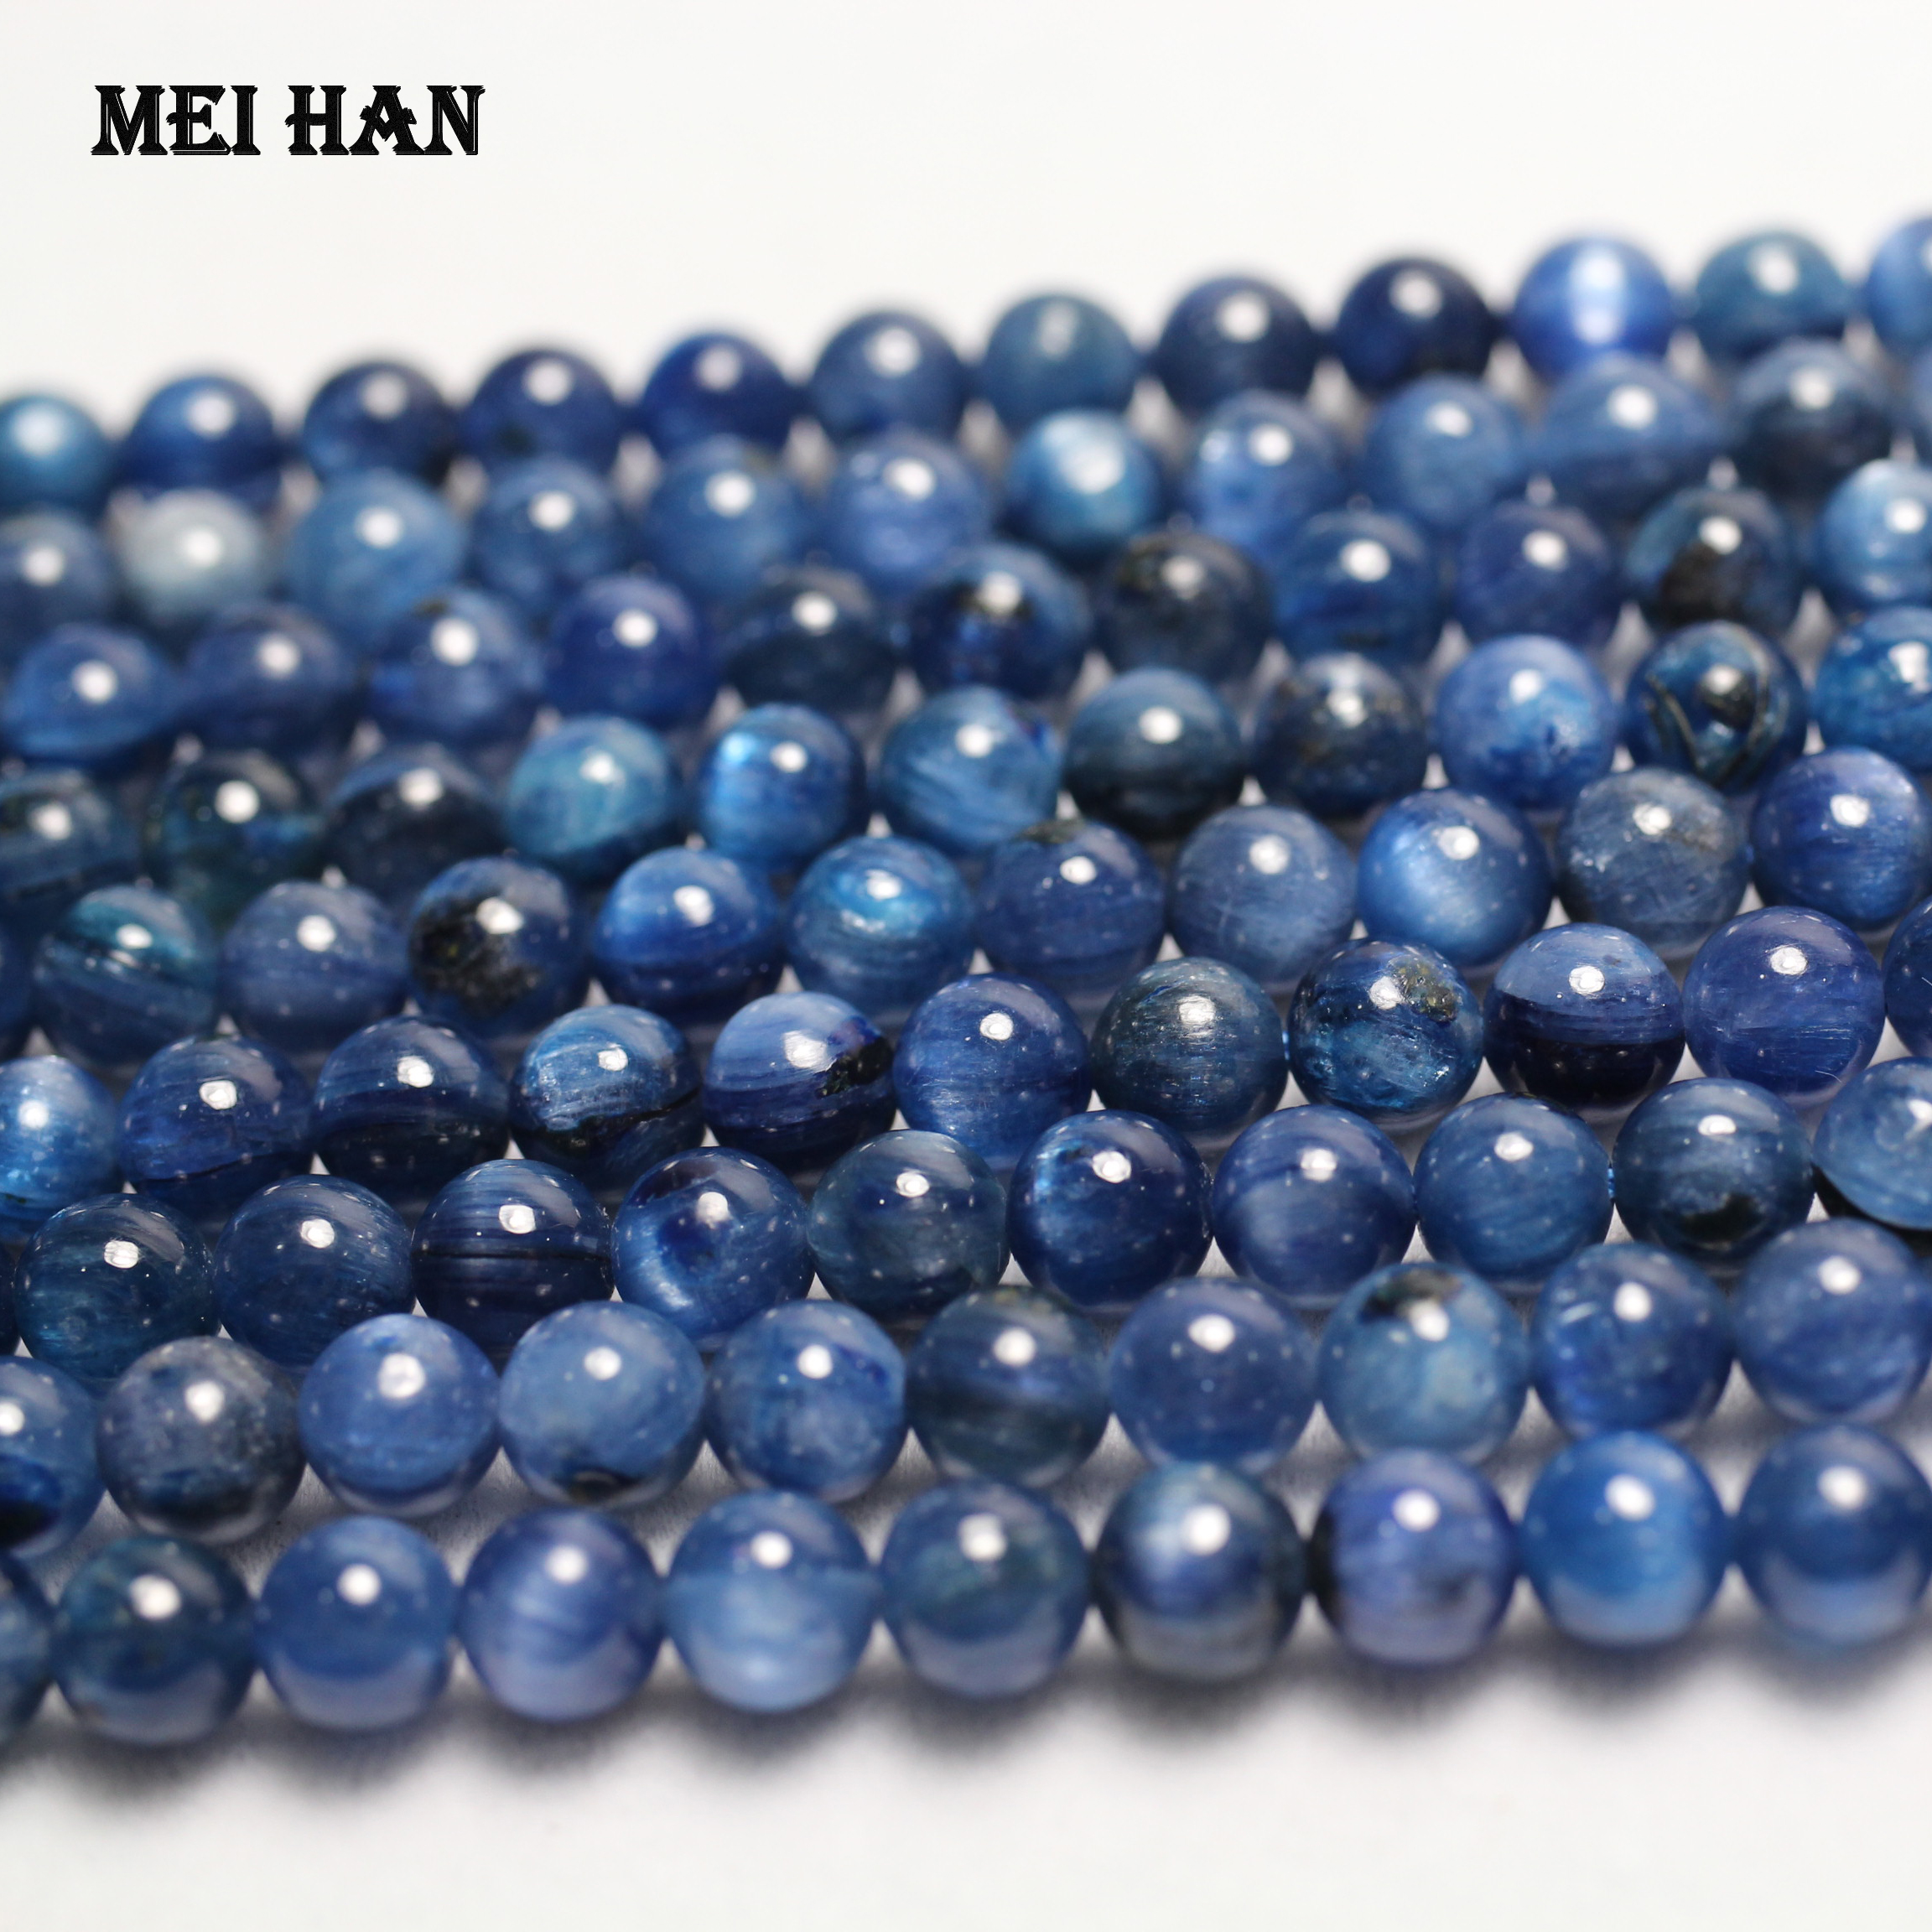 Stone-Beads Jewelry Kyanite Diy-Making Round Blue 6mm Meihan for Smooth